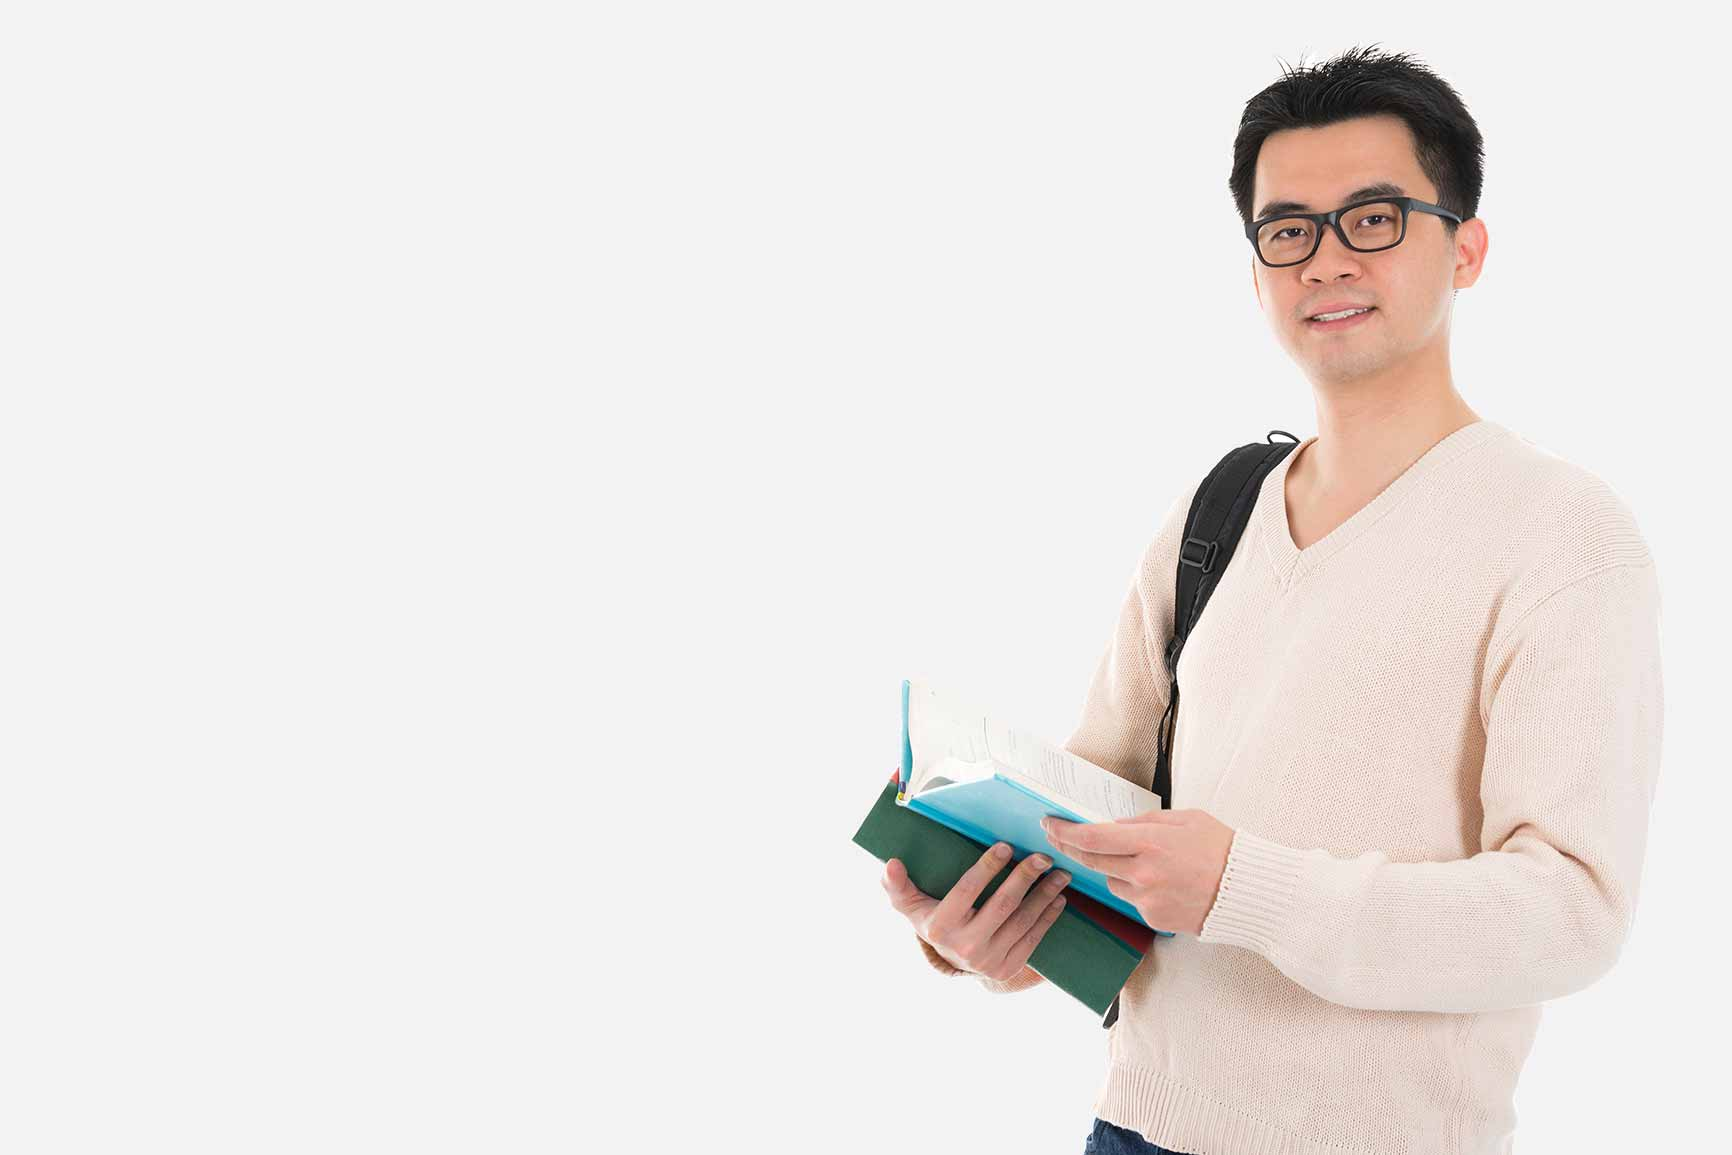 emma essays essay expert in singapore get full academic support